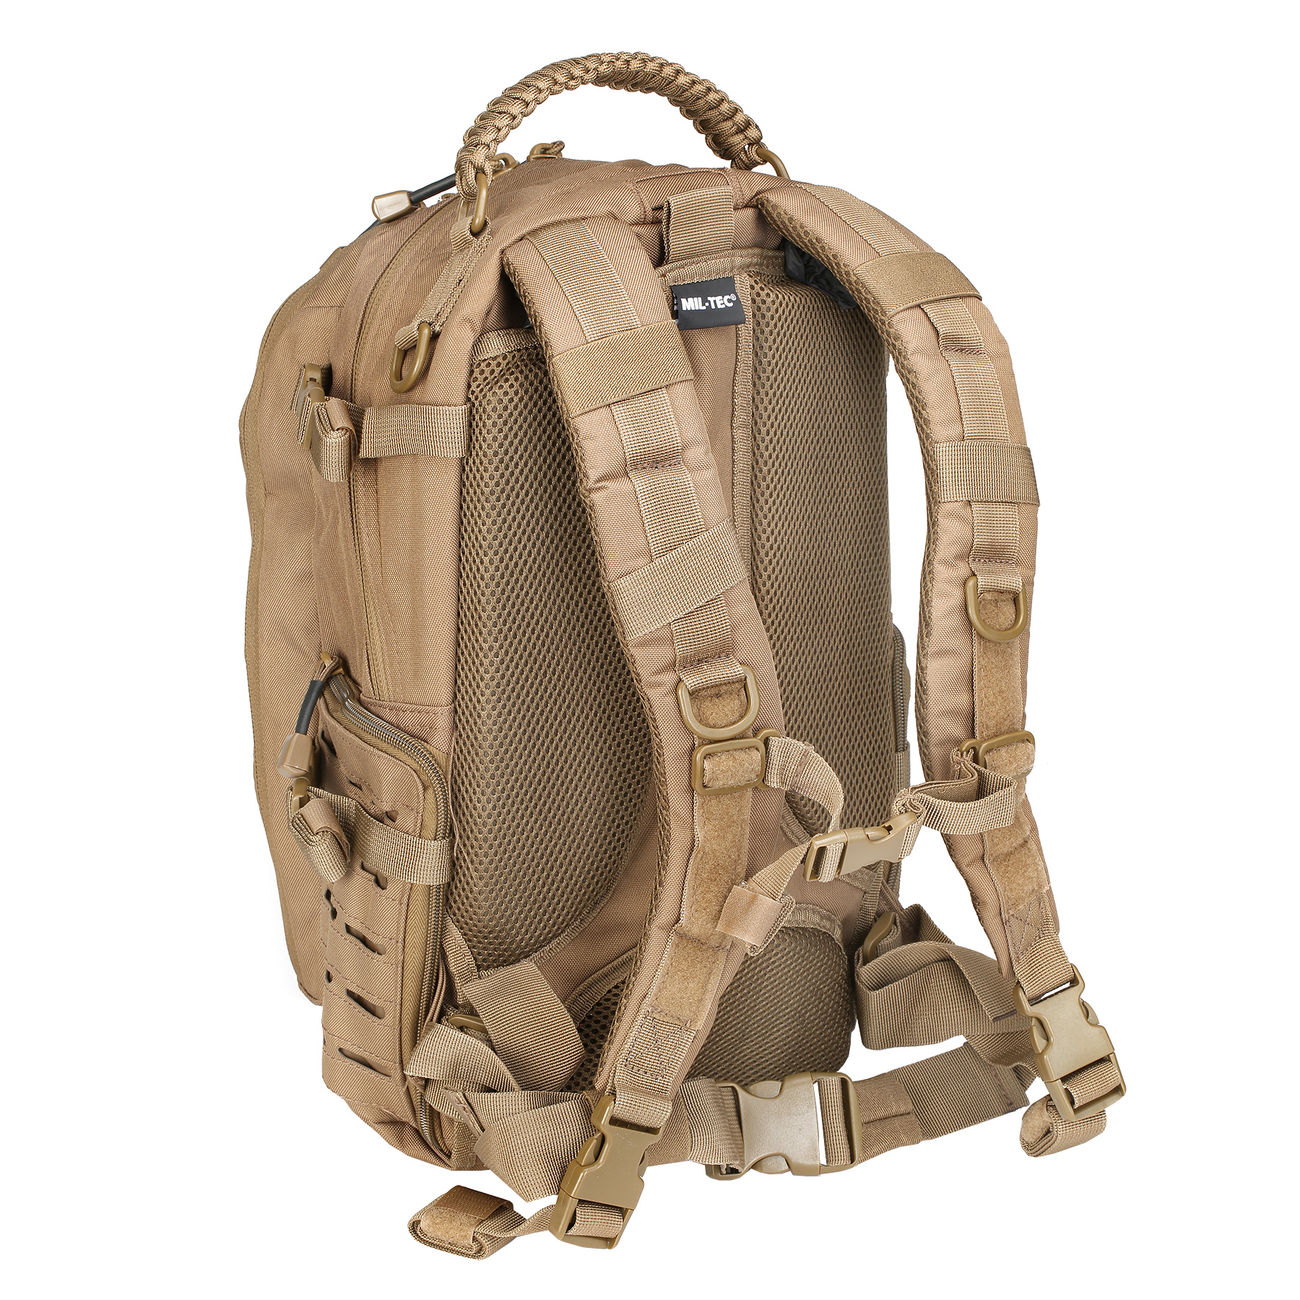 Mil-Tec Rucksack Mission Pack Laser Cut Small dark coyote 3